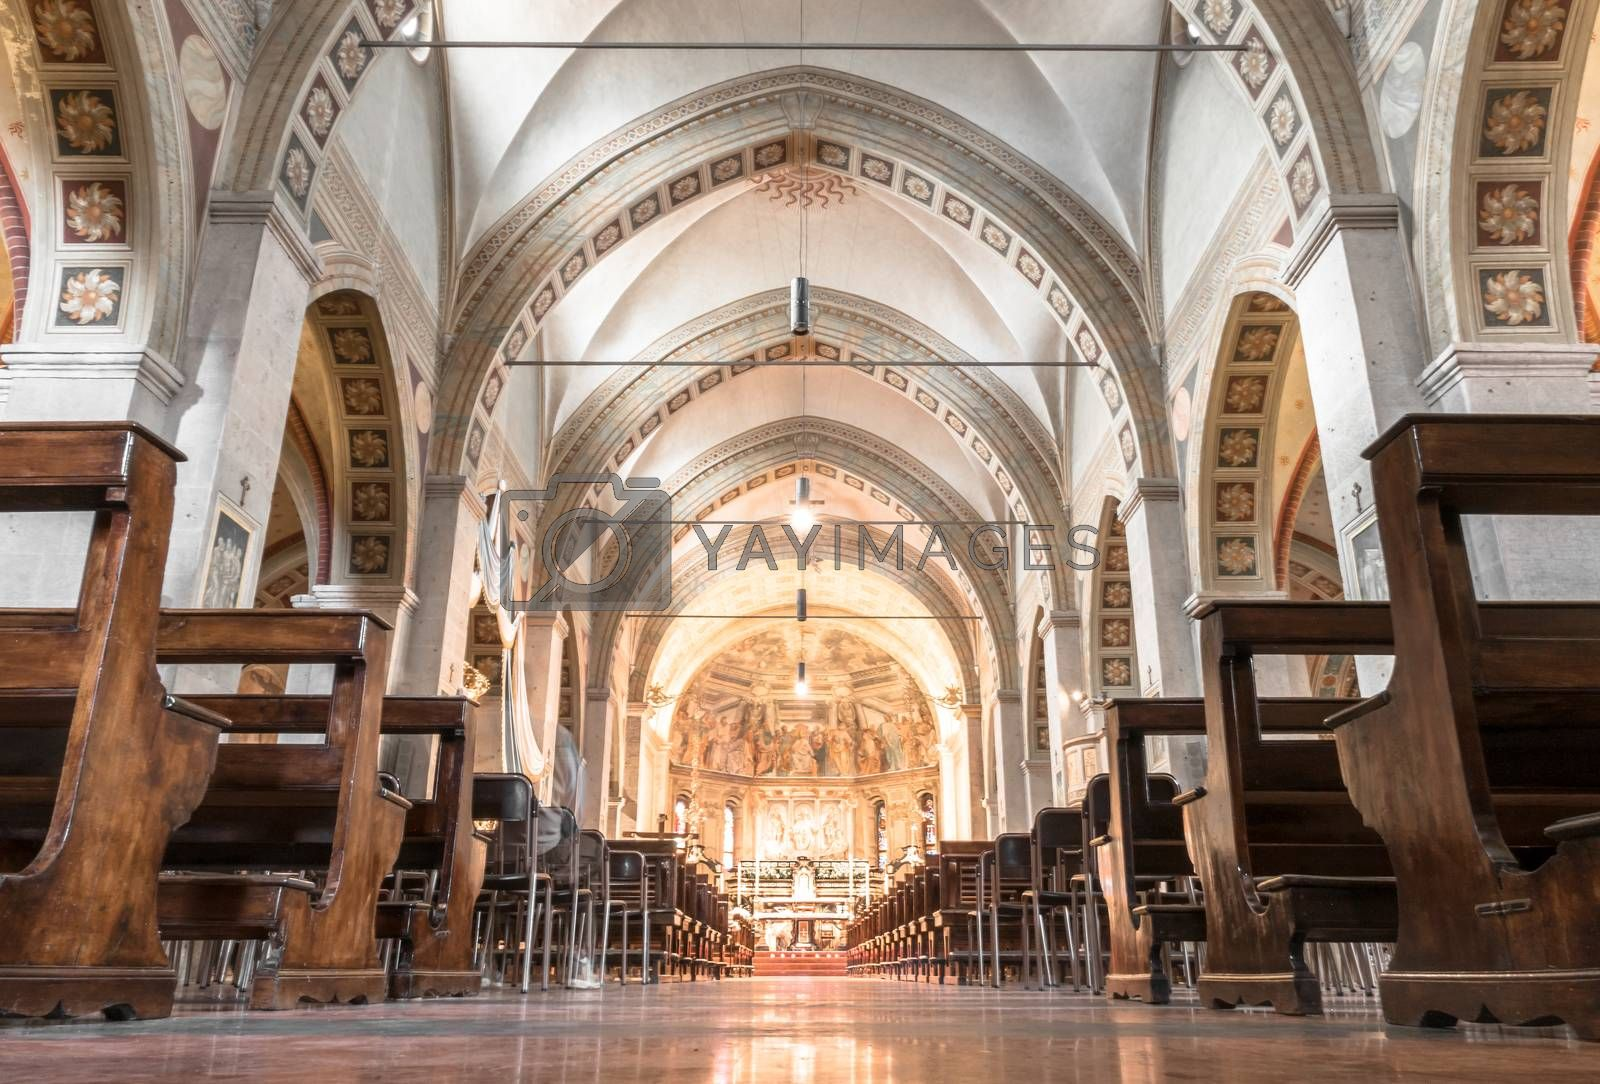 Inside a church in italy. Symbol of Christianity and Catholicism. Ideal for concepts or festivity. Bottom view.